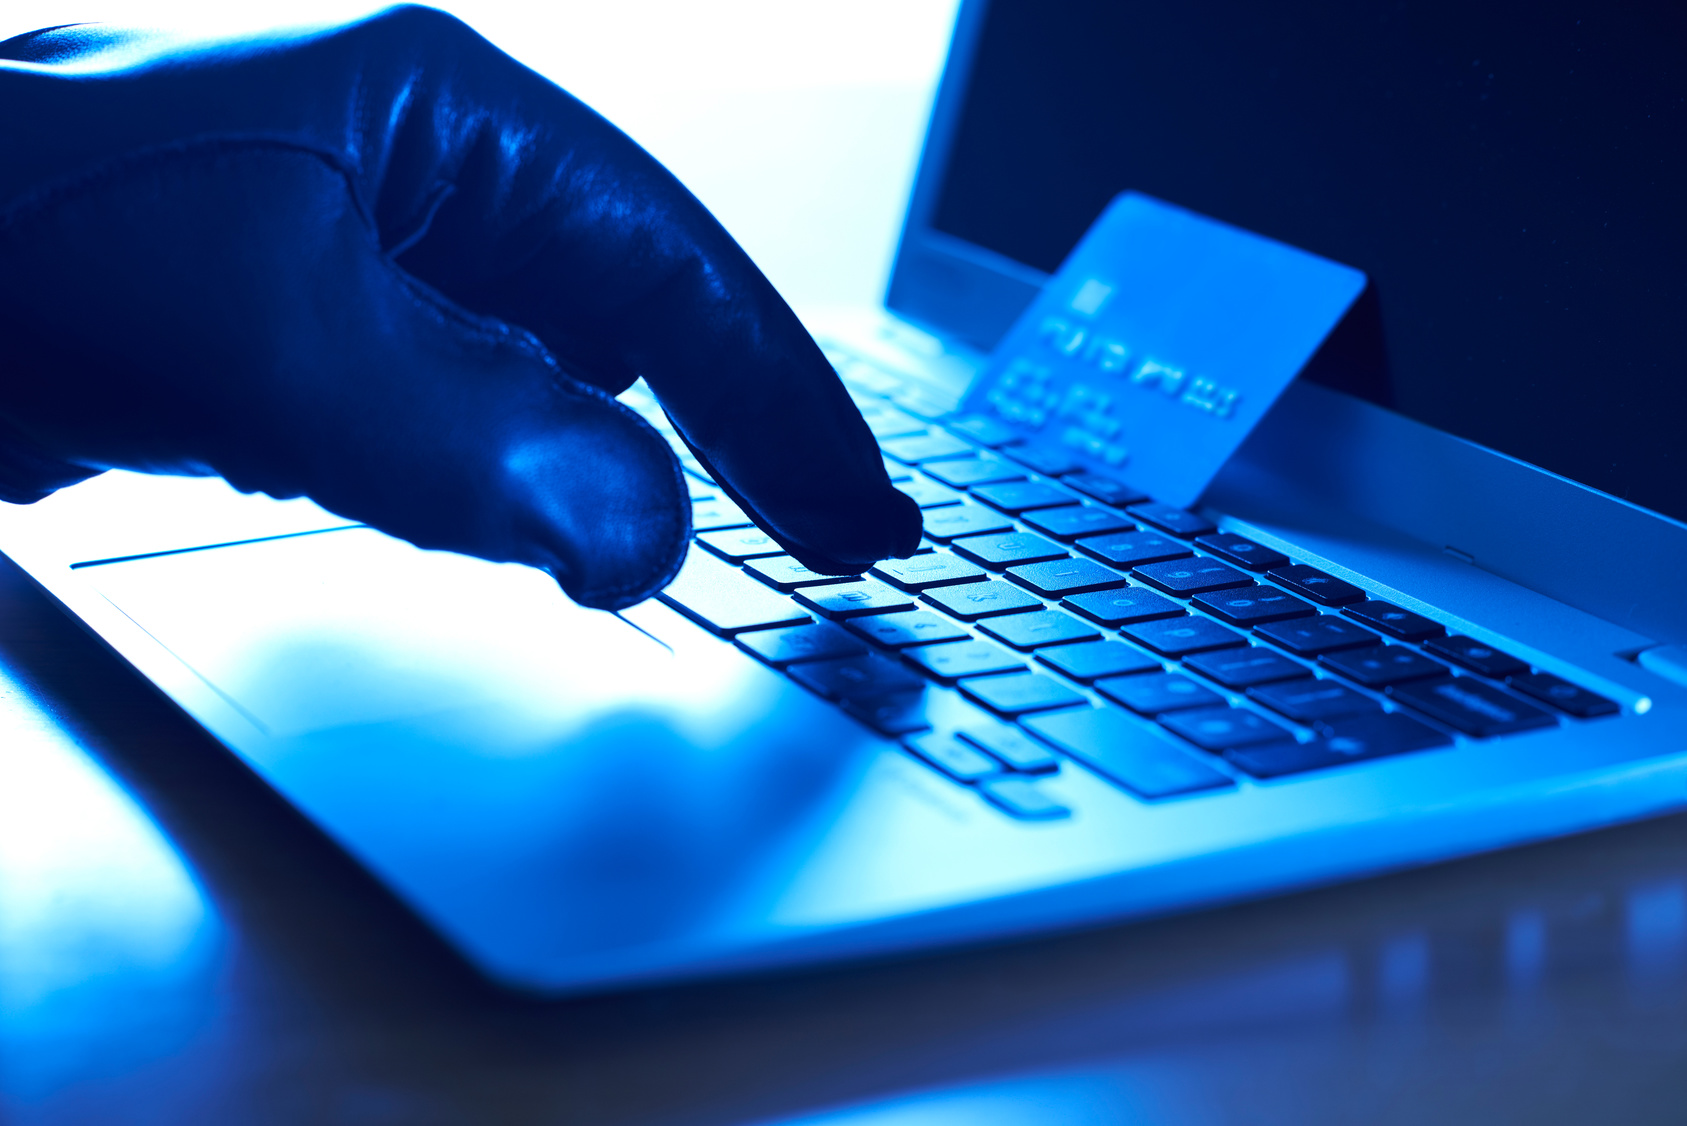 Cyber Criminal With Stolen Credit Card And Laptop